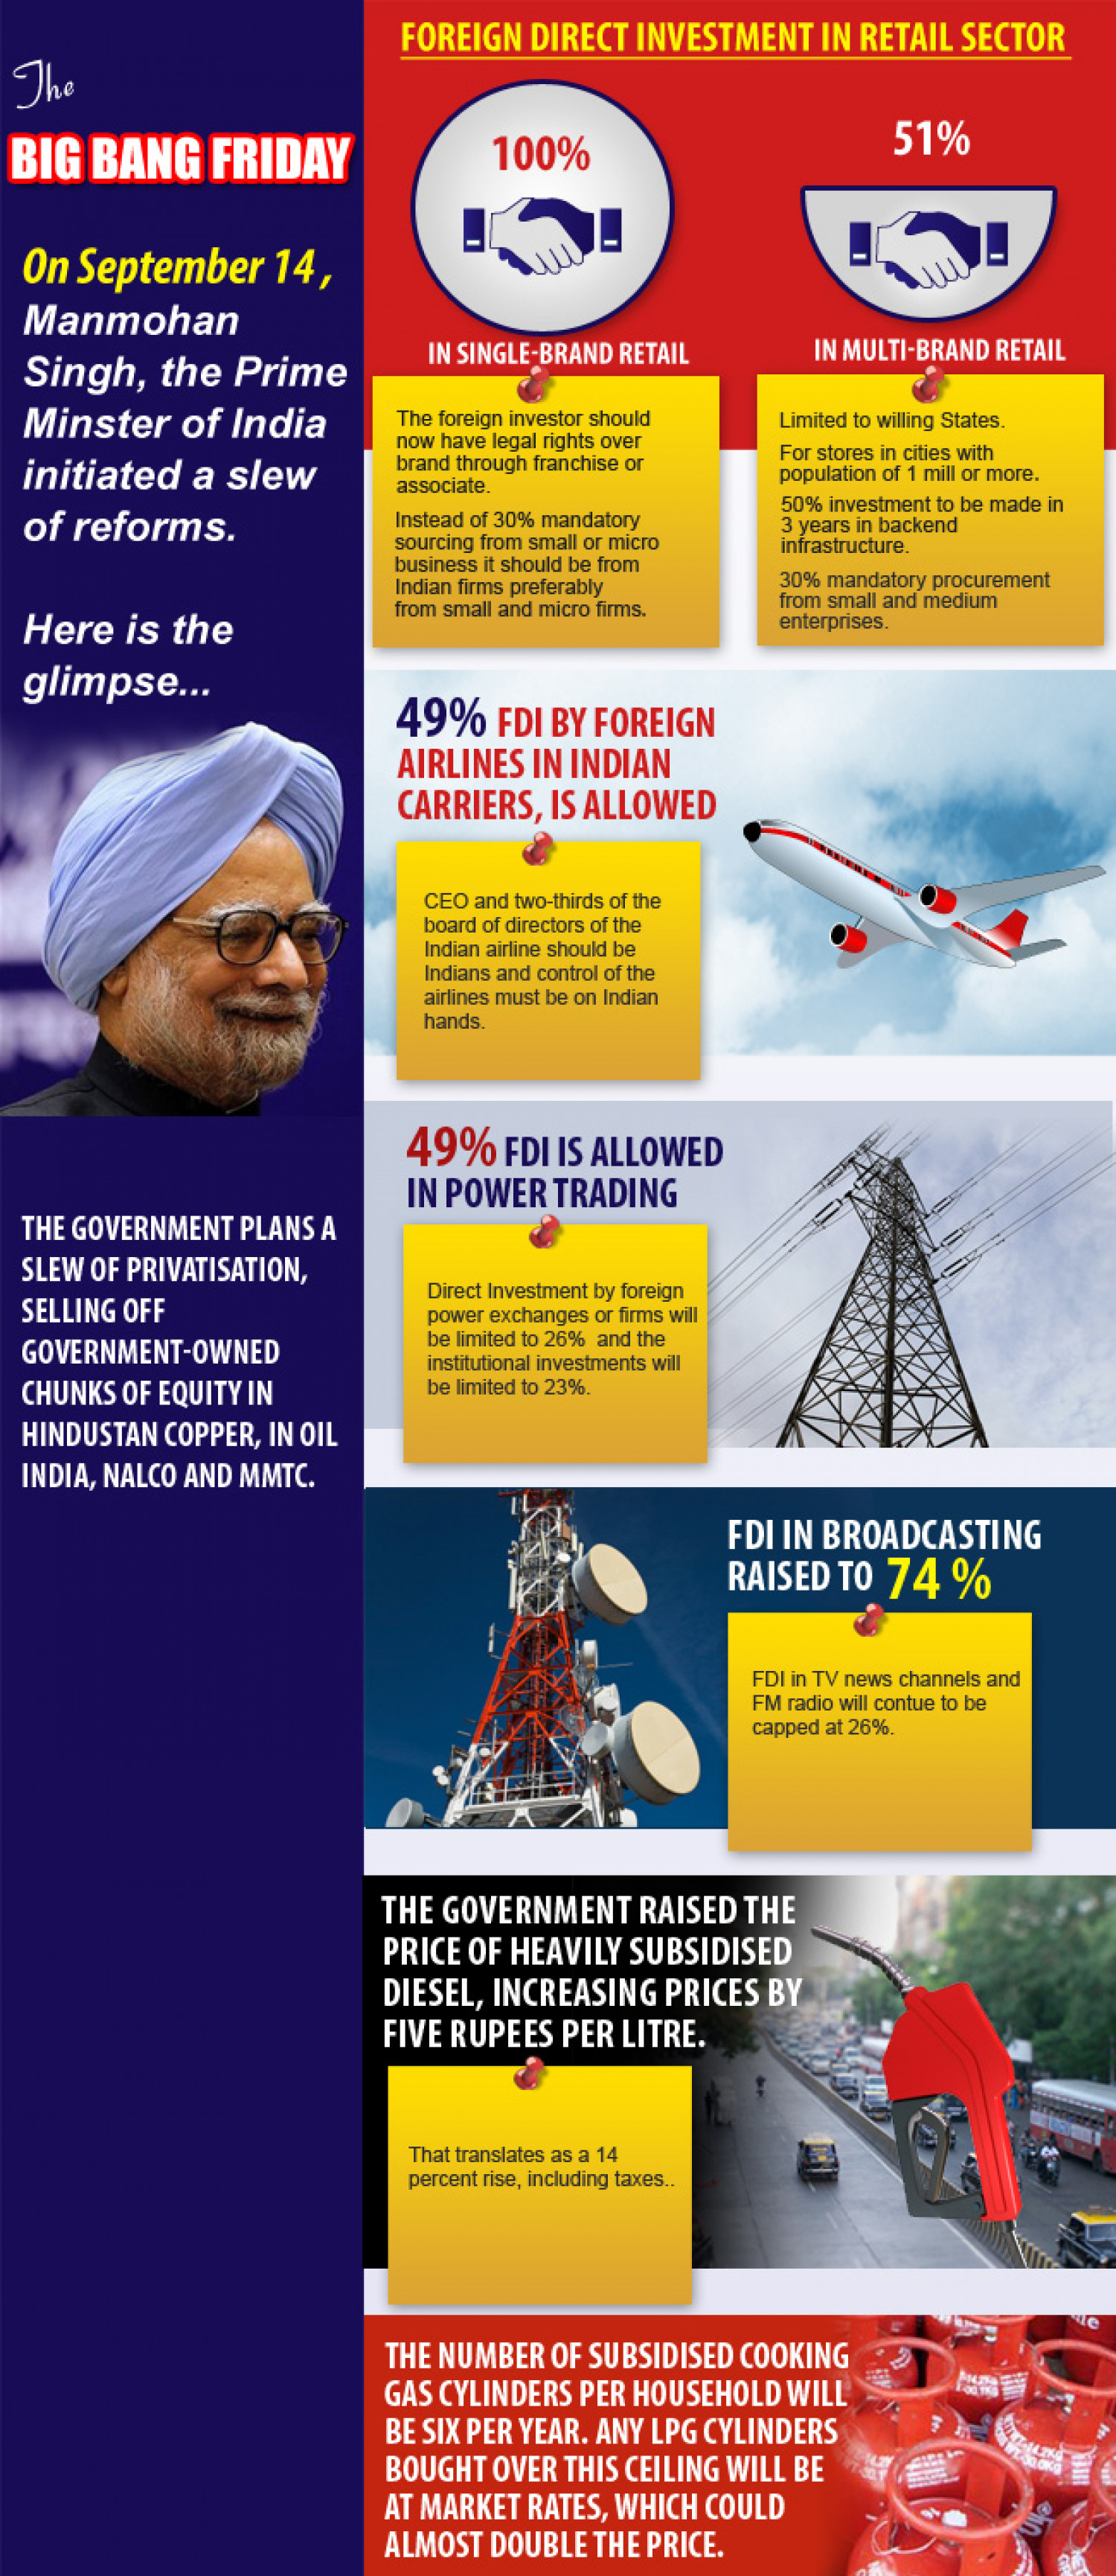 The Big Bang Friday Reforms Infographic